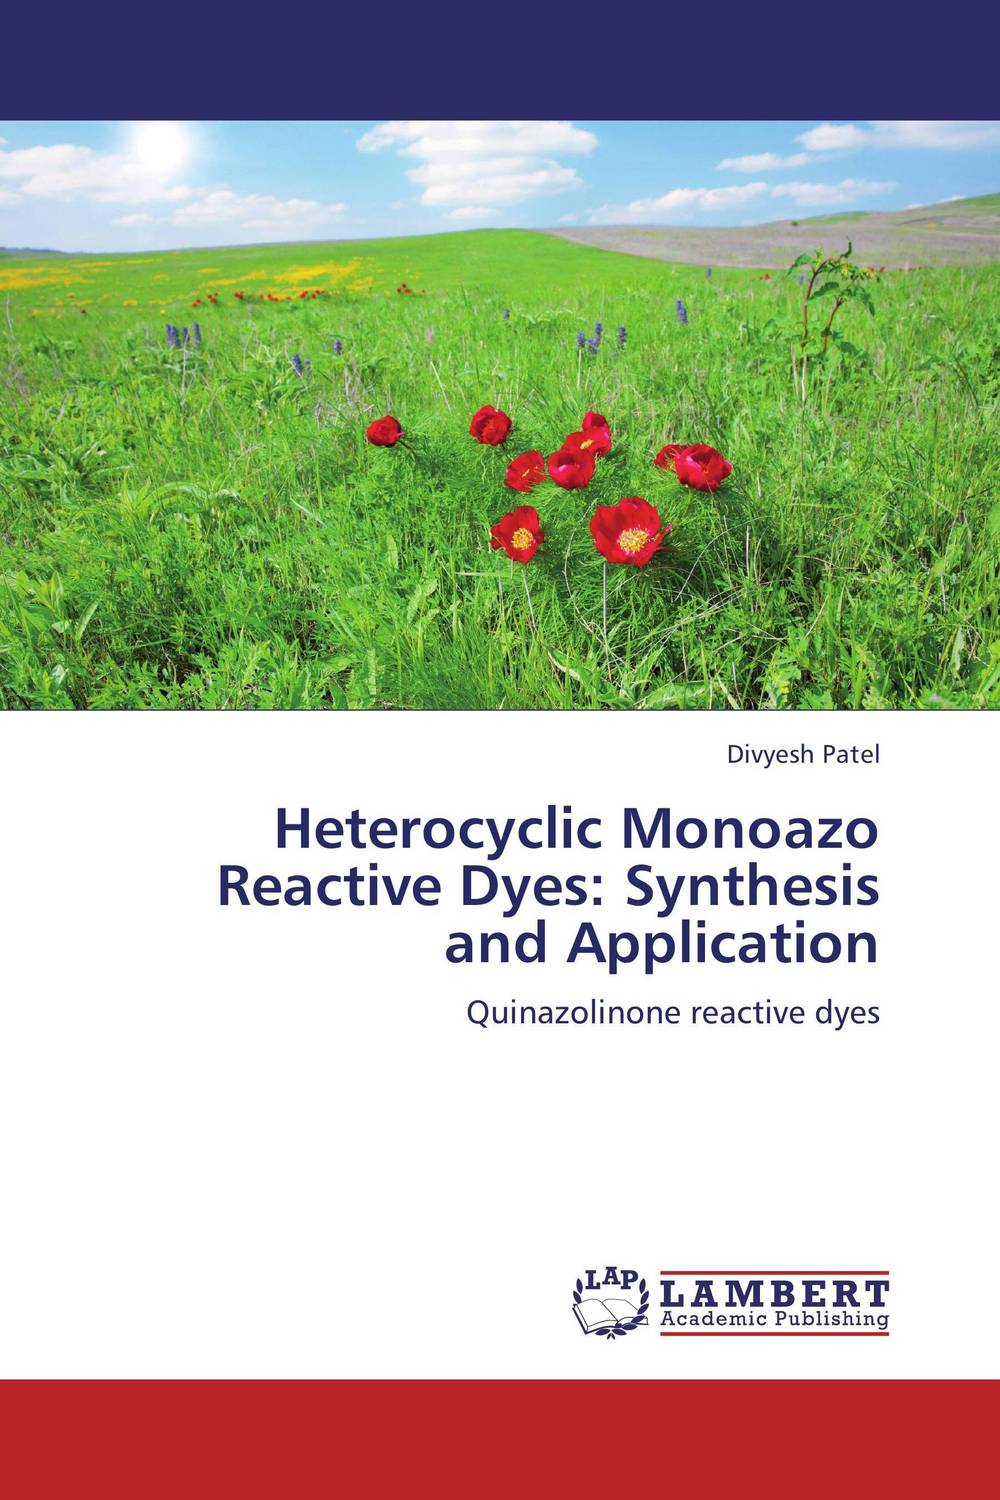 Heterocyclic Monoazo Reactive Dyes: Synthesis and Application natural dyes for textiles